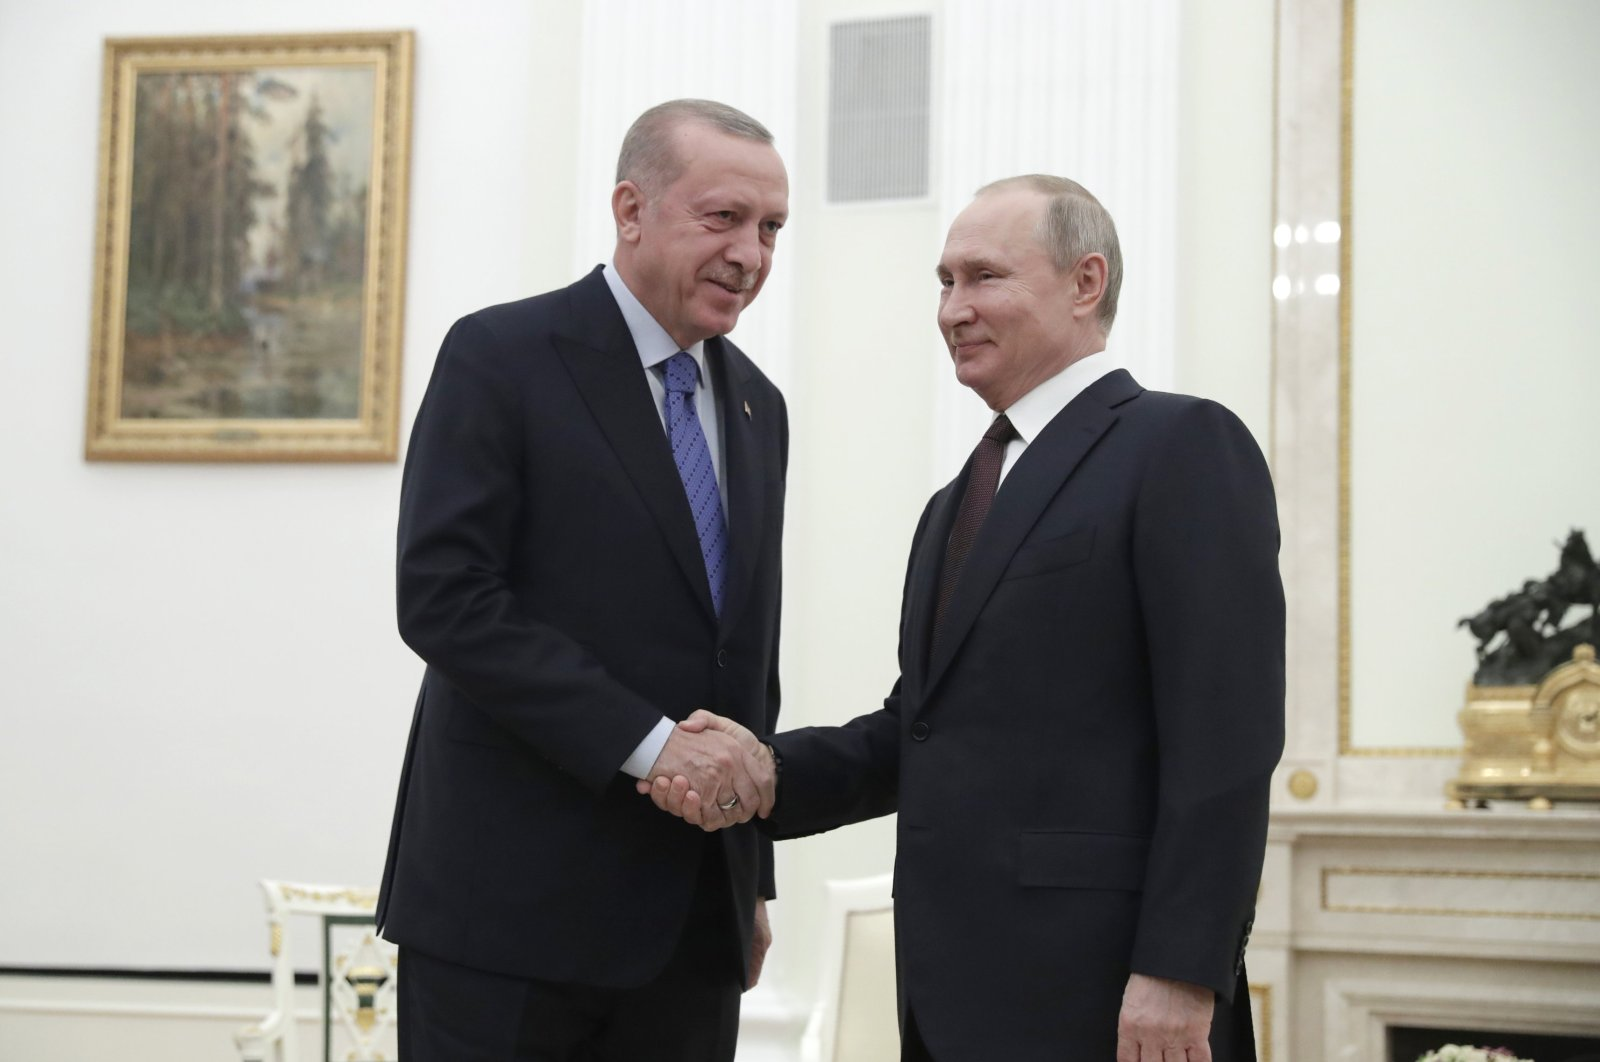 Russian President Vladimir Putin, right, and Turkish President Recep Tayyip Erdoğan shake hands prior to their talks at the Kremlin in Moscow, Russia, Thursday, March 5, 2020. (AP Photo)